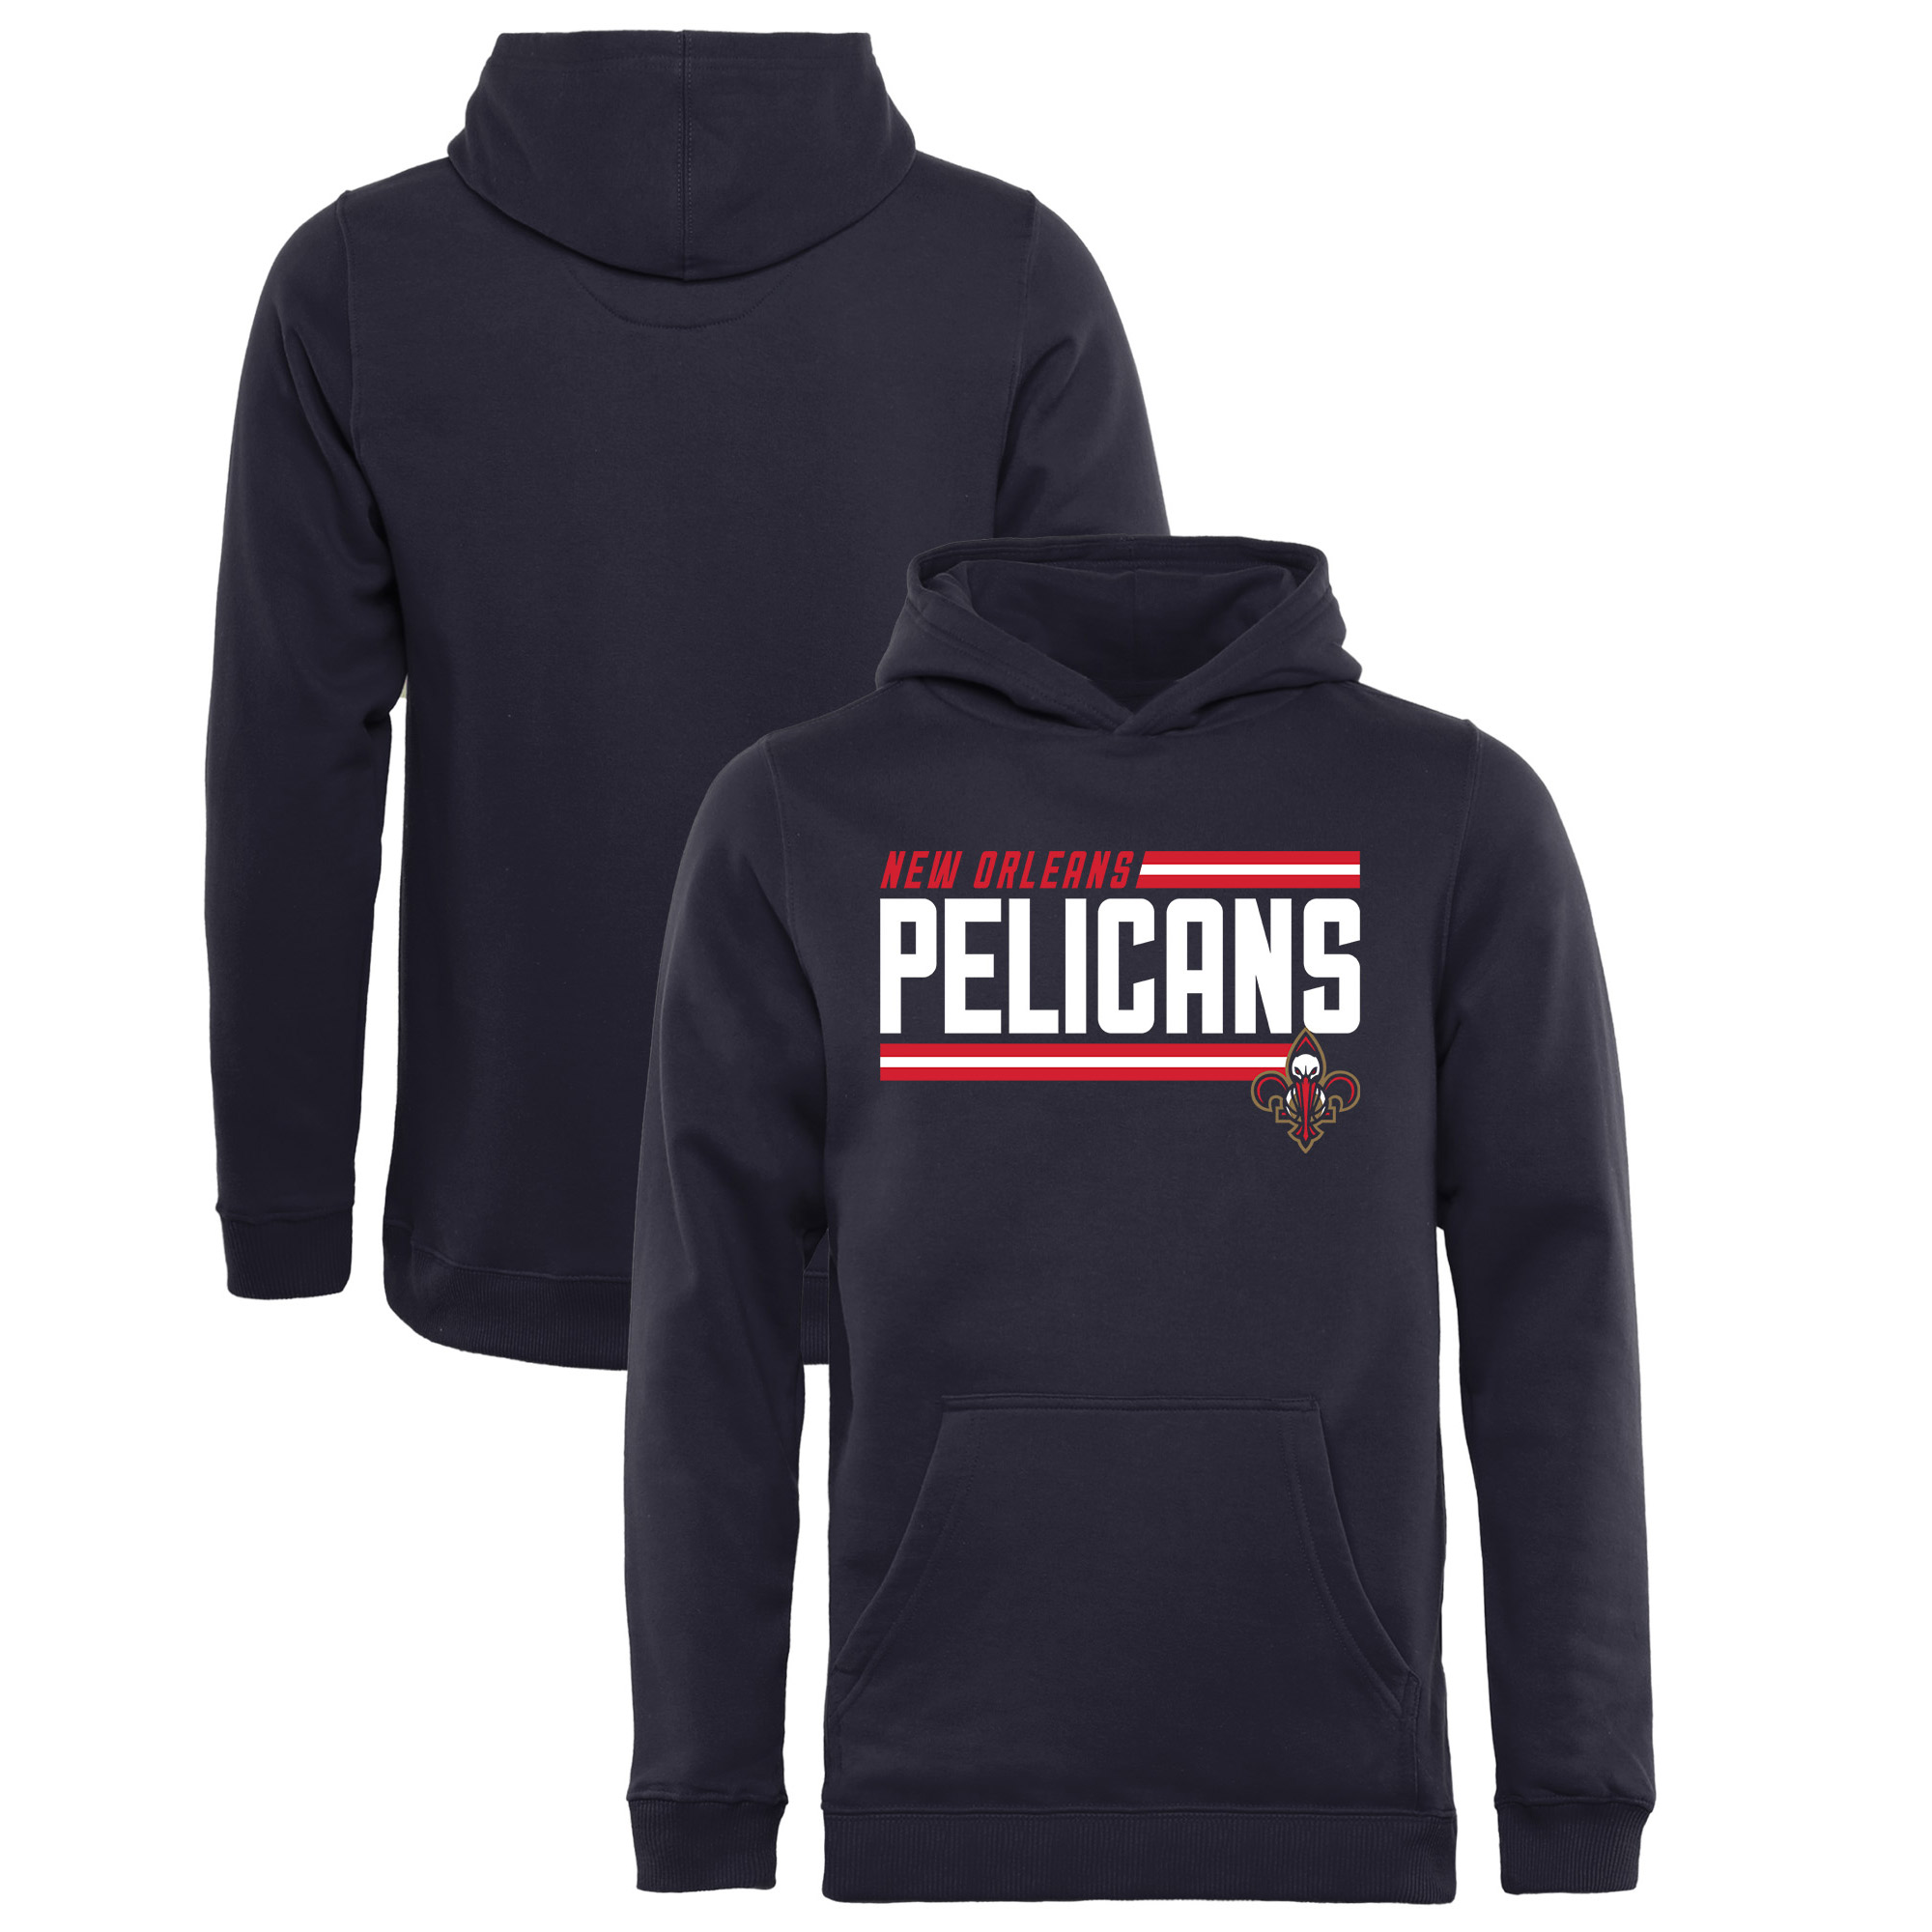 New Orleans Pelicans Fanatics Branded Youth Onside Stripe Pullover Hoodie - Navy